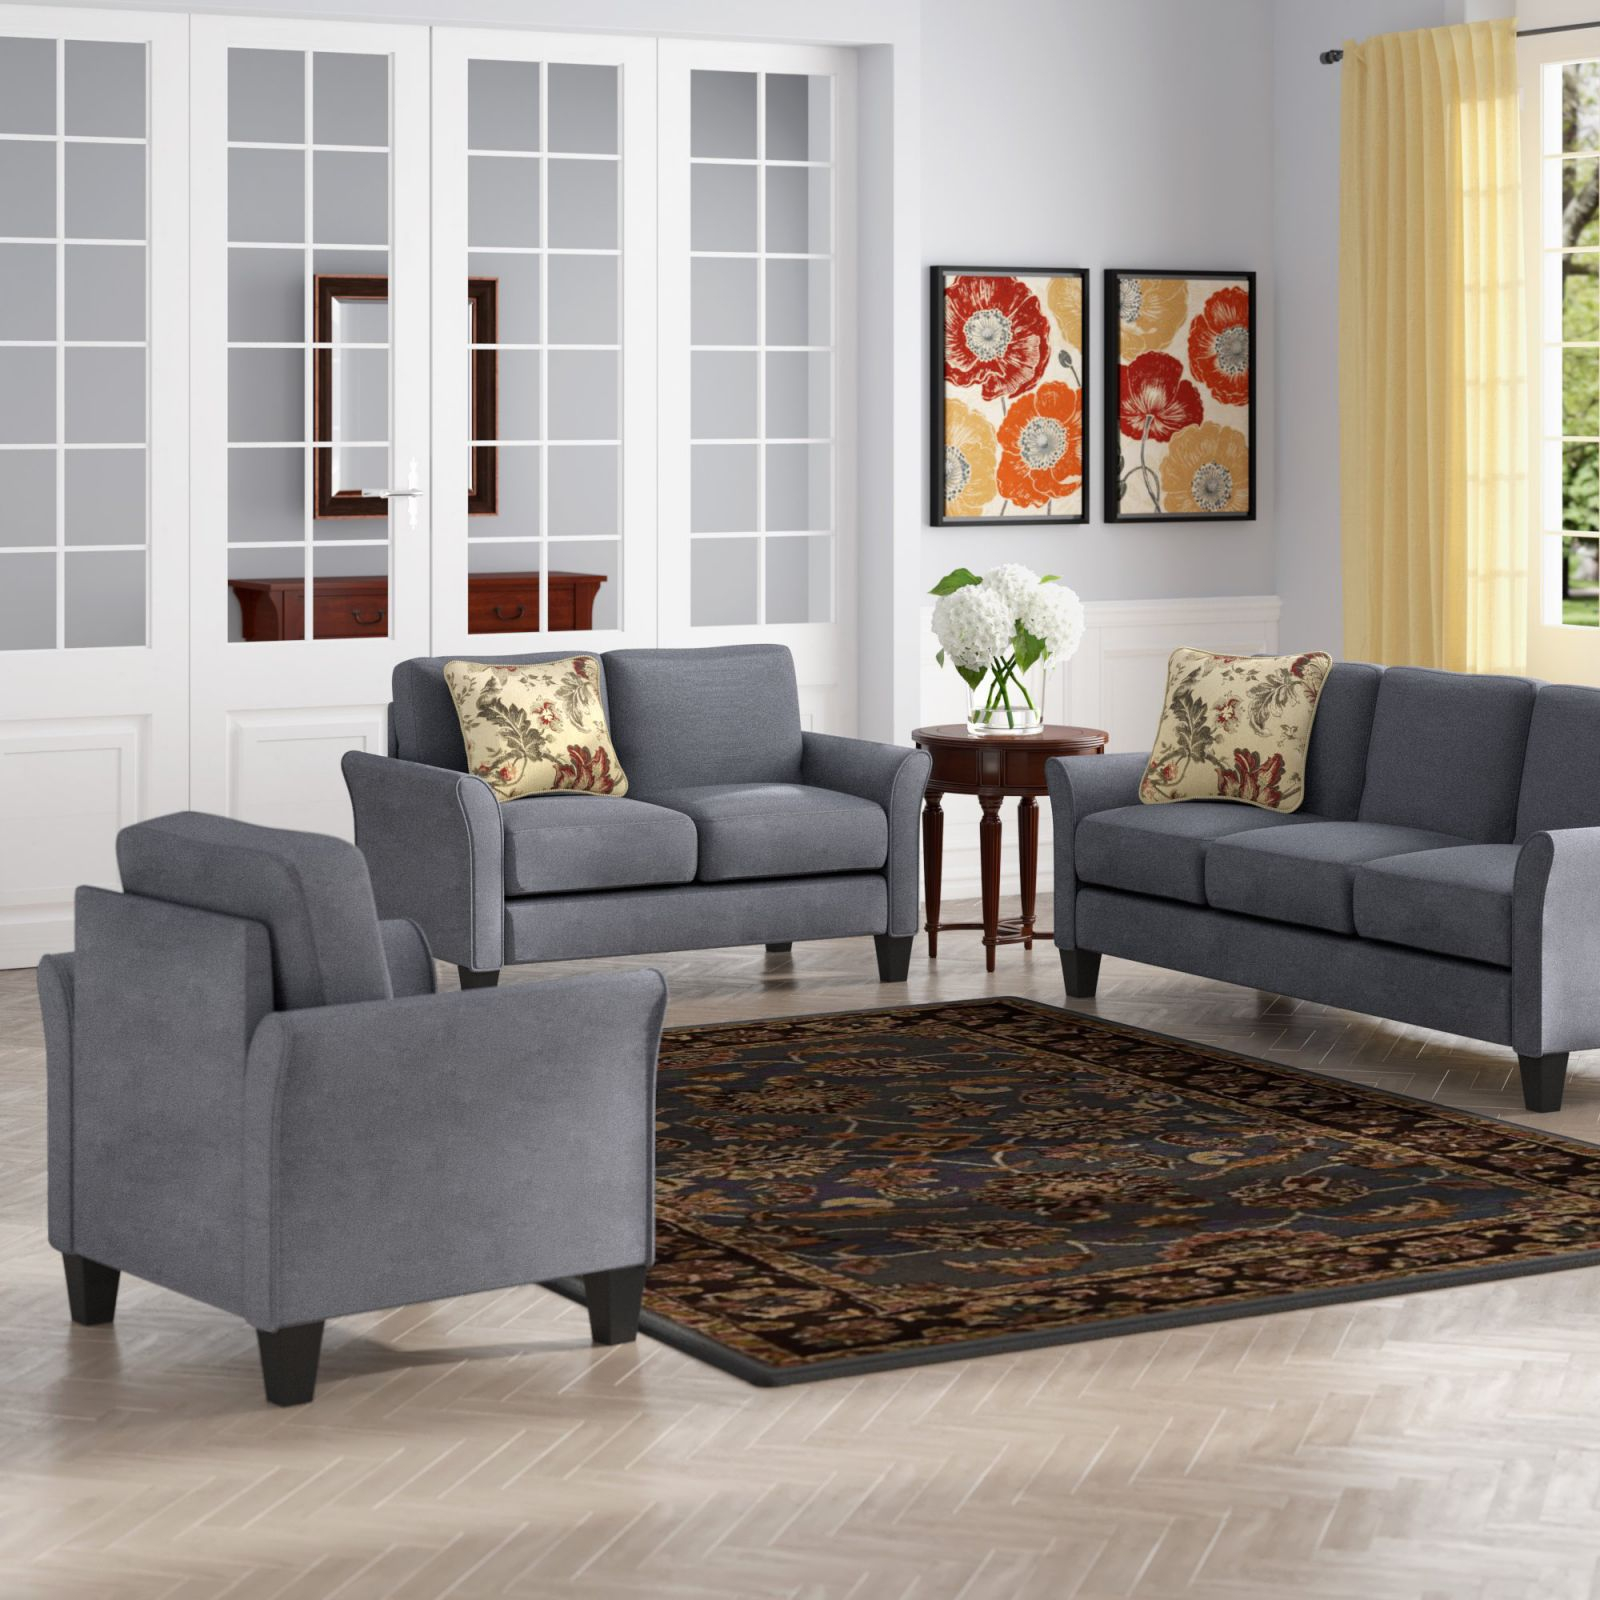 Goldnilla 3 Piece Living Room Set with regard to Living Room Sets